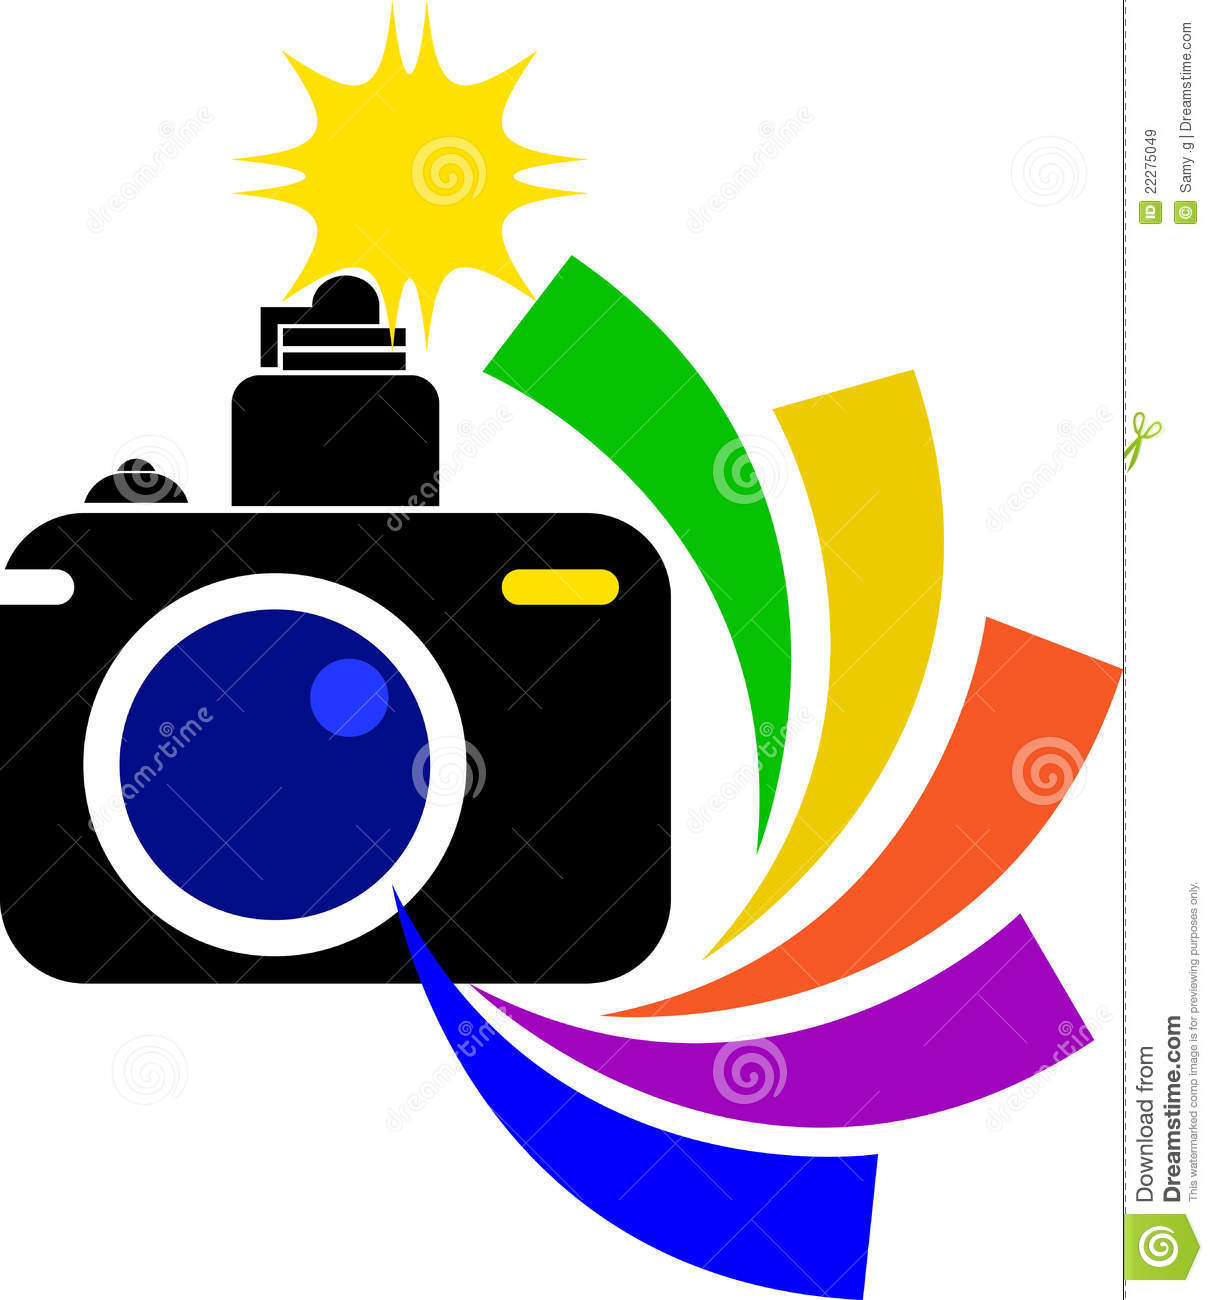 camera flash clipart free download best camera flash movie camera clipart movie camera clip art transparent